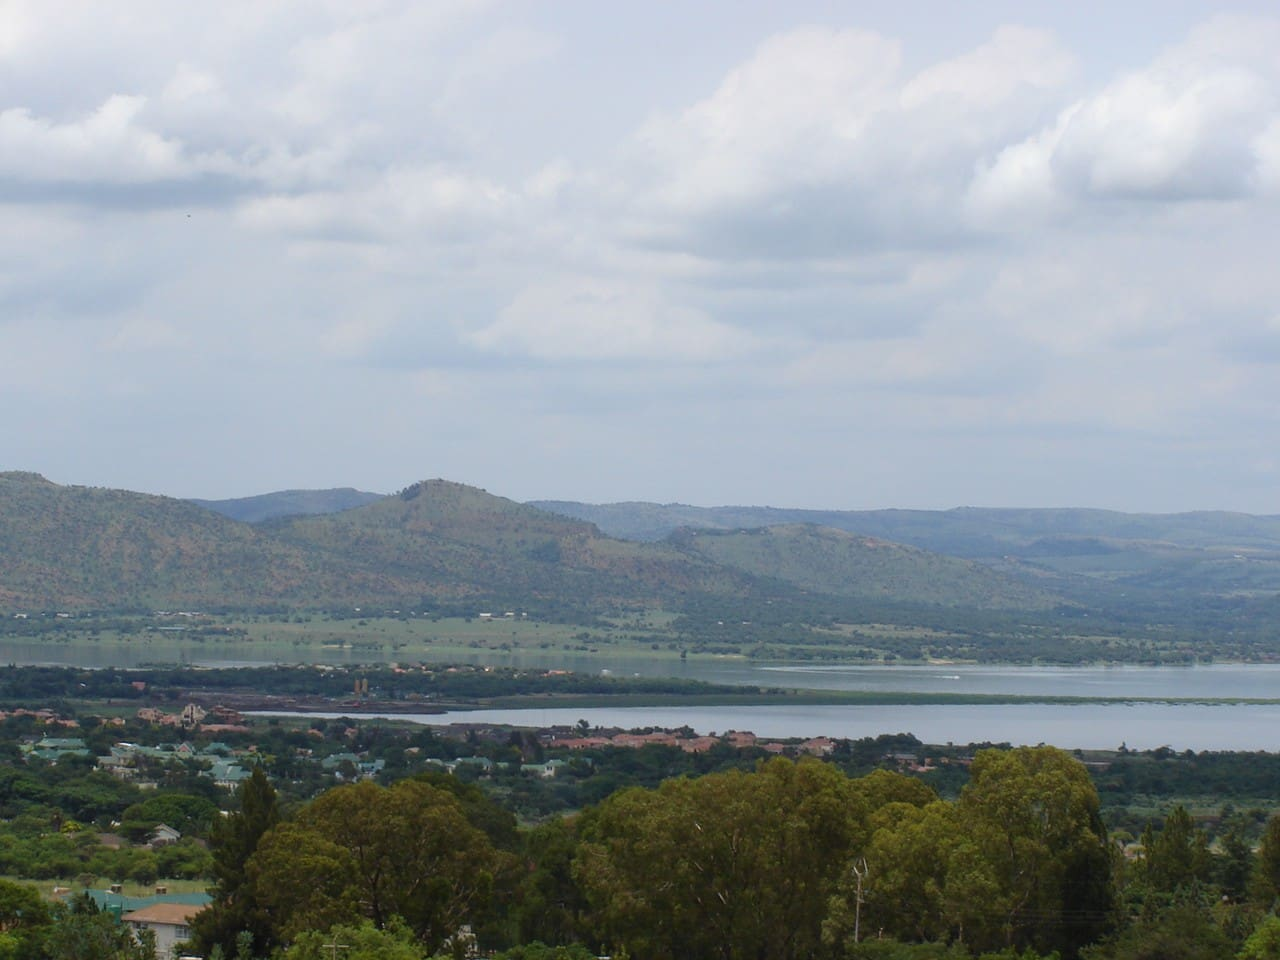 View of Hartbeespoortdam and surrounding area as seen from Coucal Cottage.